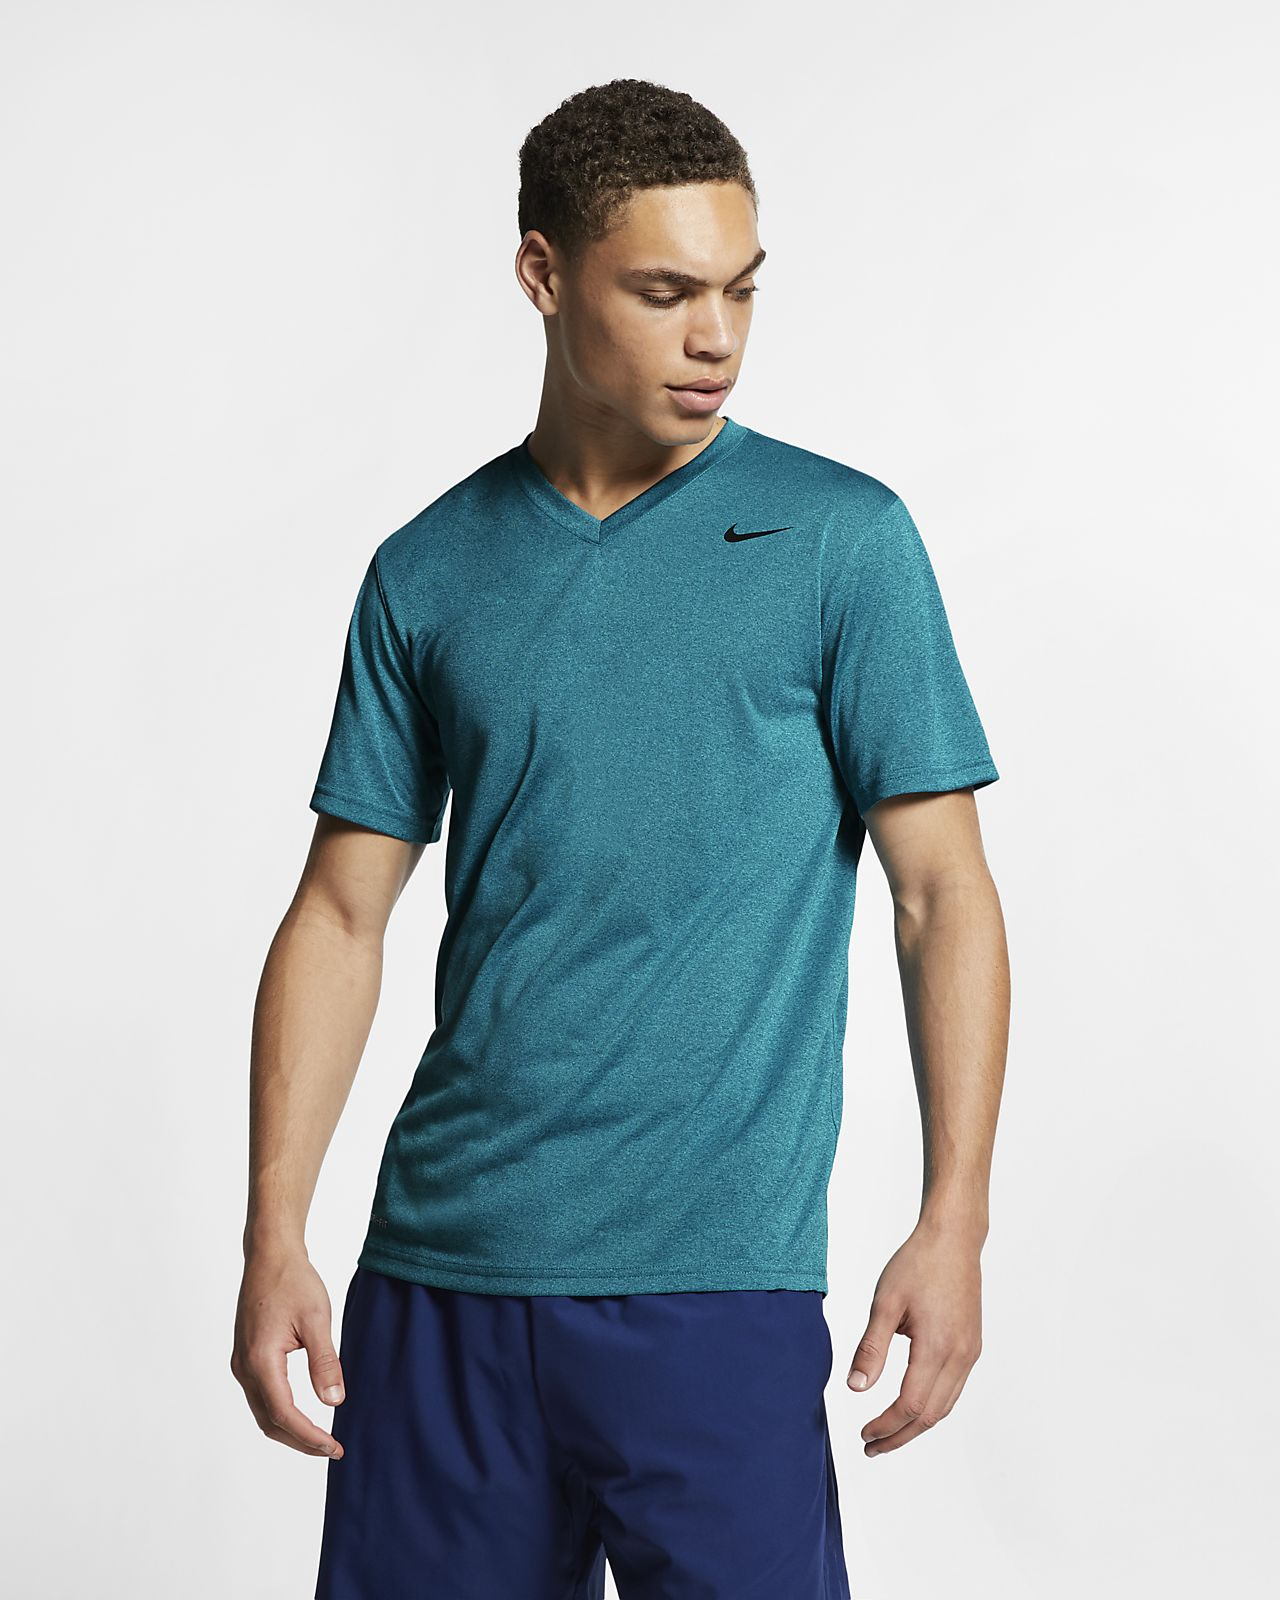 e3724829 Nike Legend 2.0 V-Neck Men's Training Shirt. Nike.com